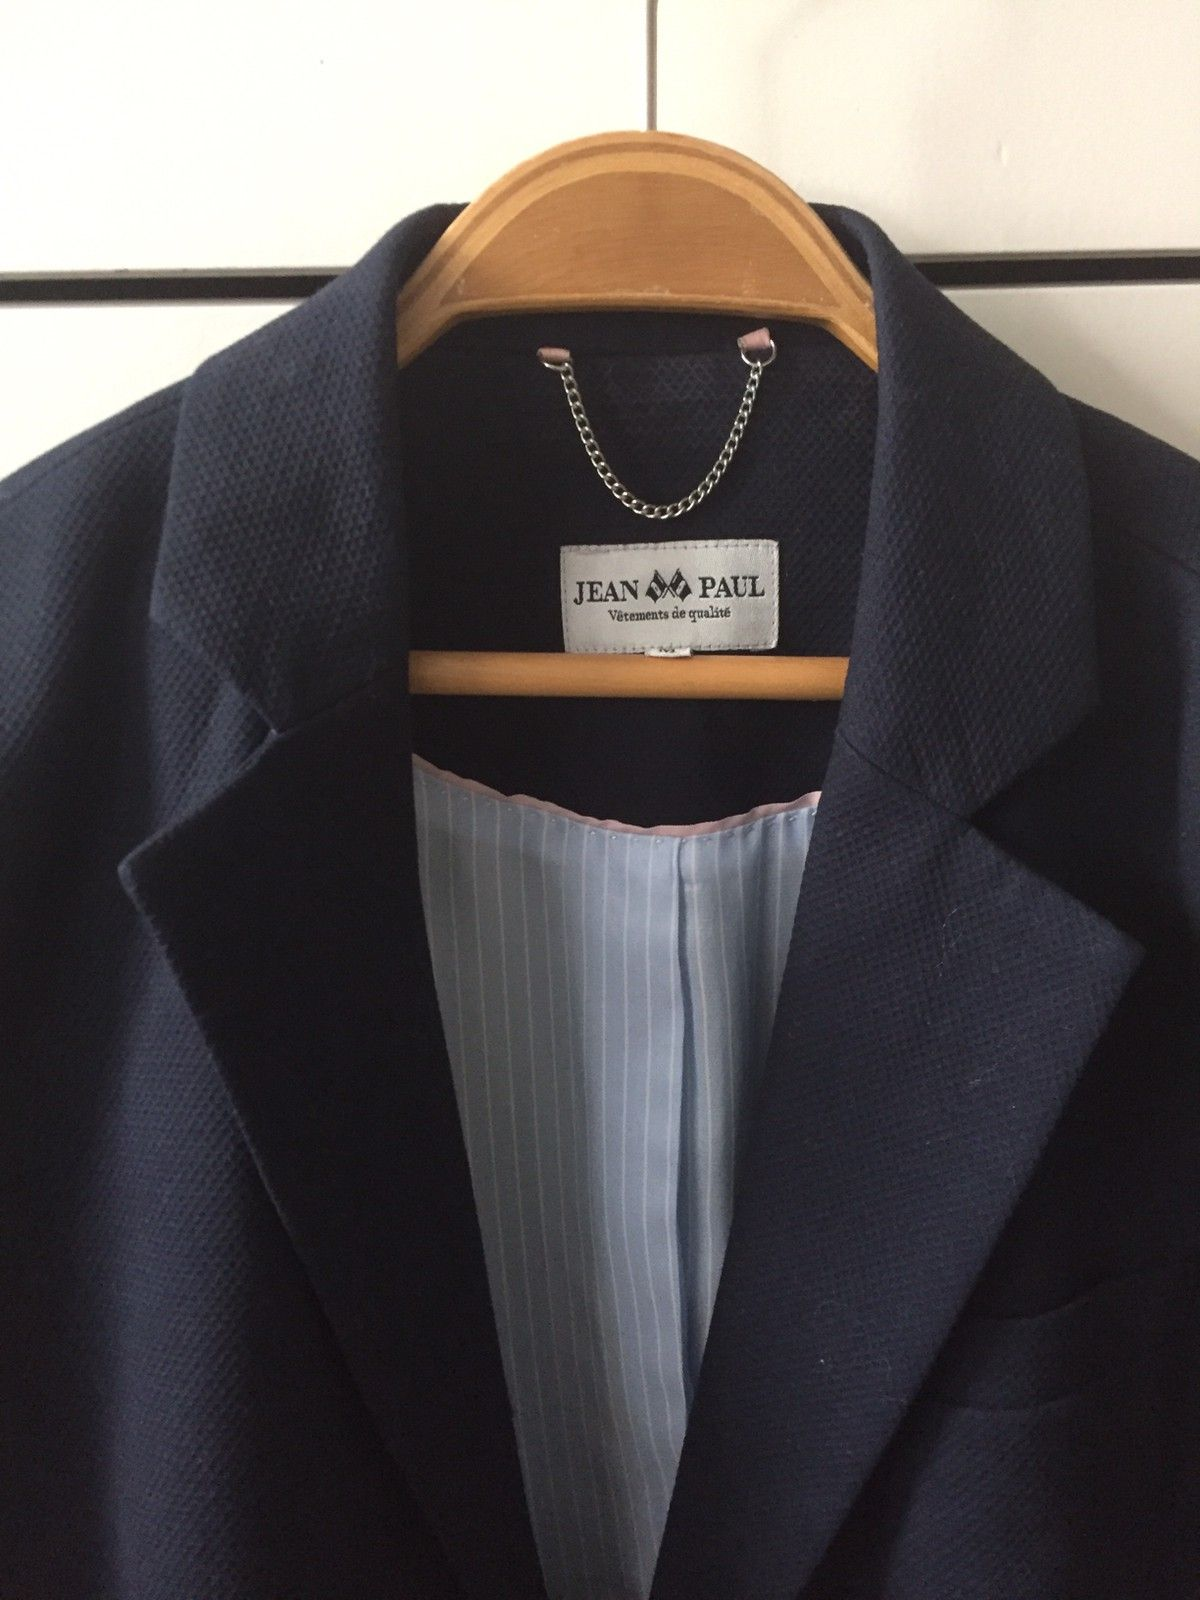 6be5f58f Jean Paul dressjakke - marineblå str M | FINN.no